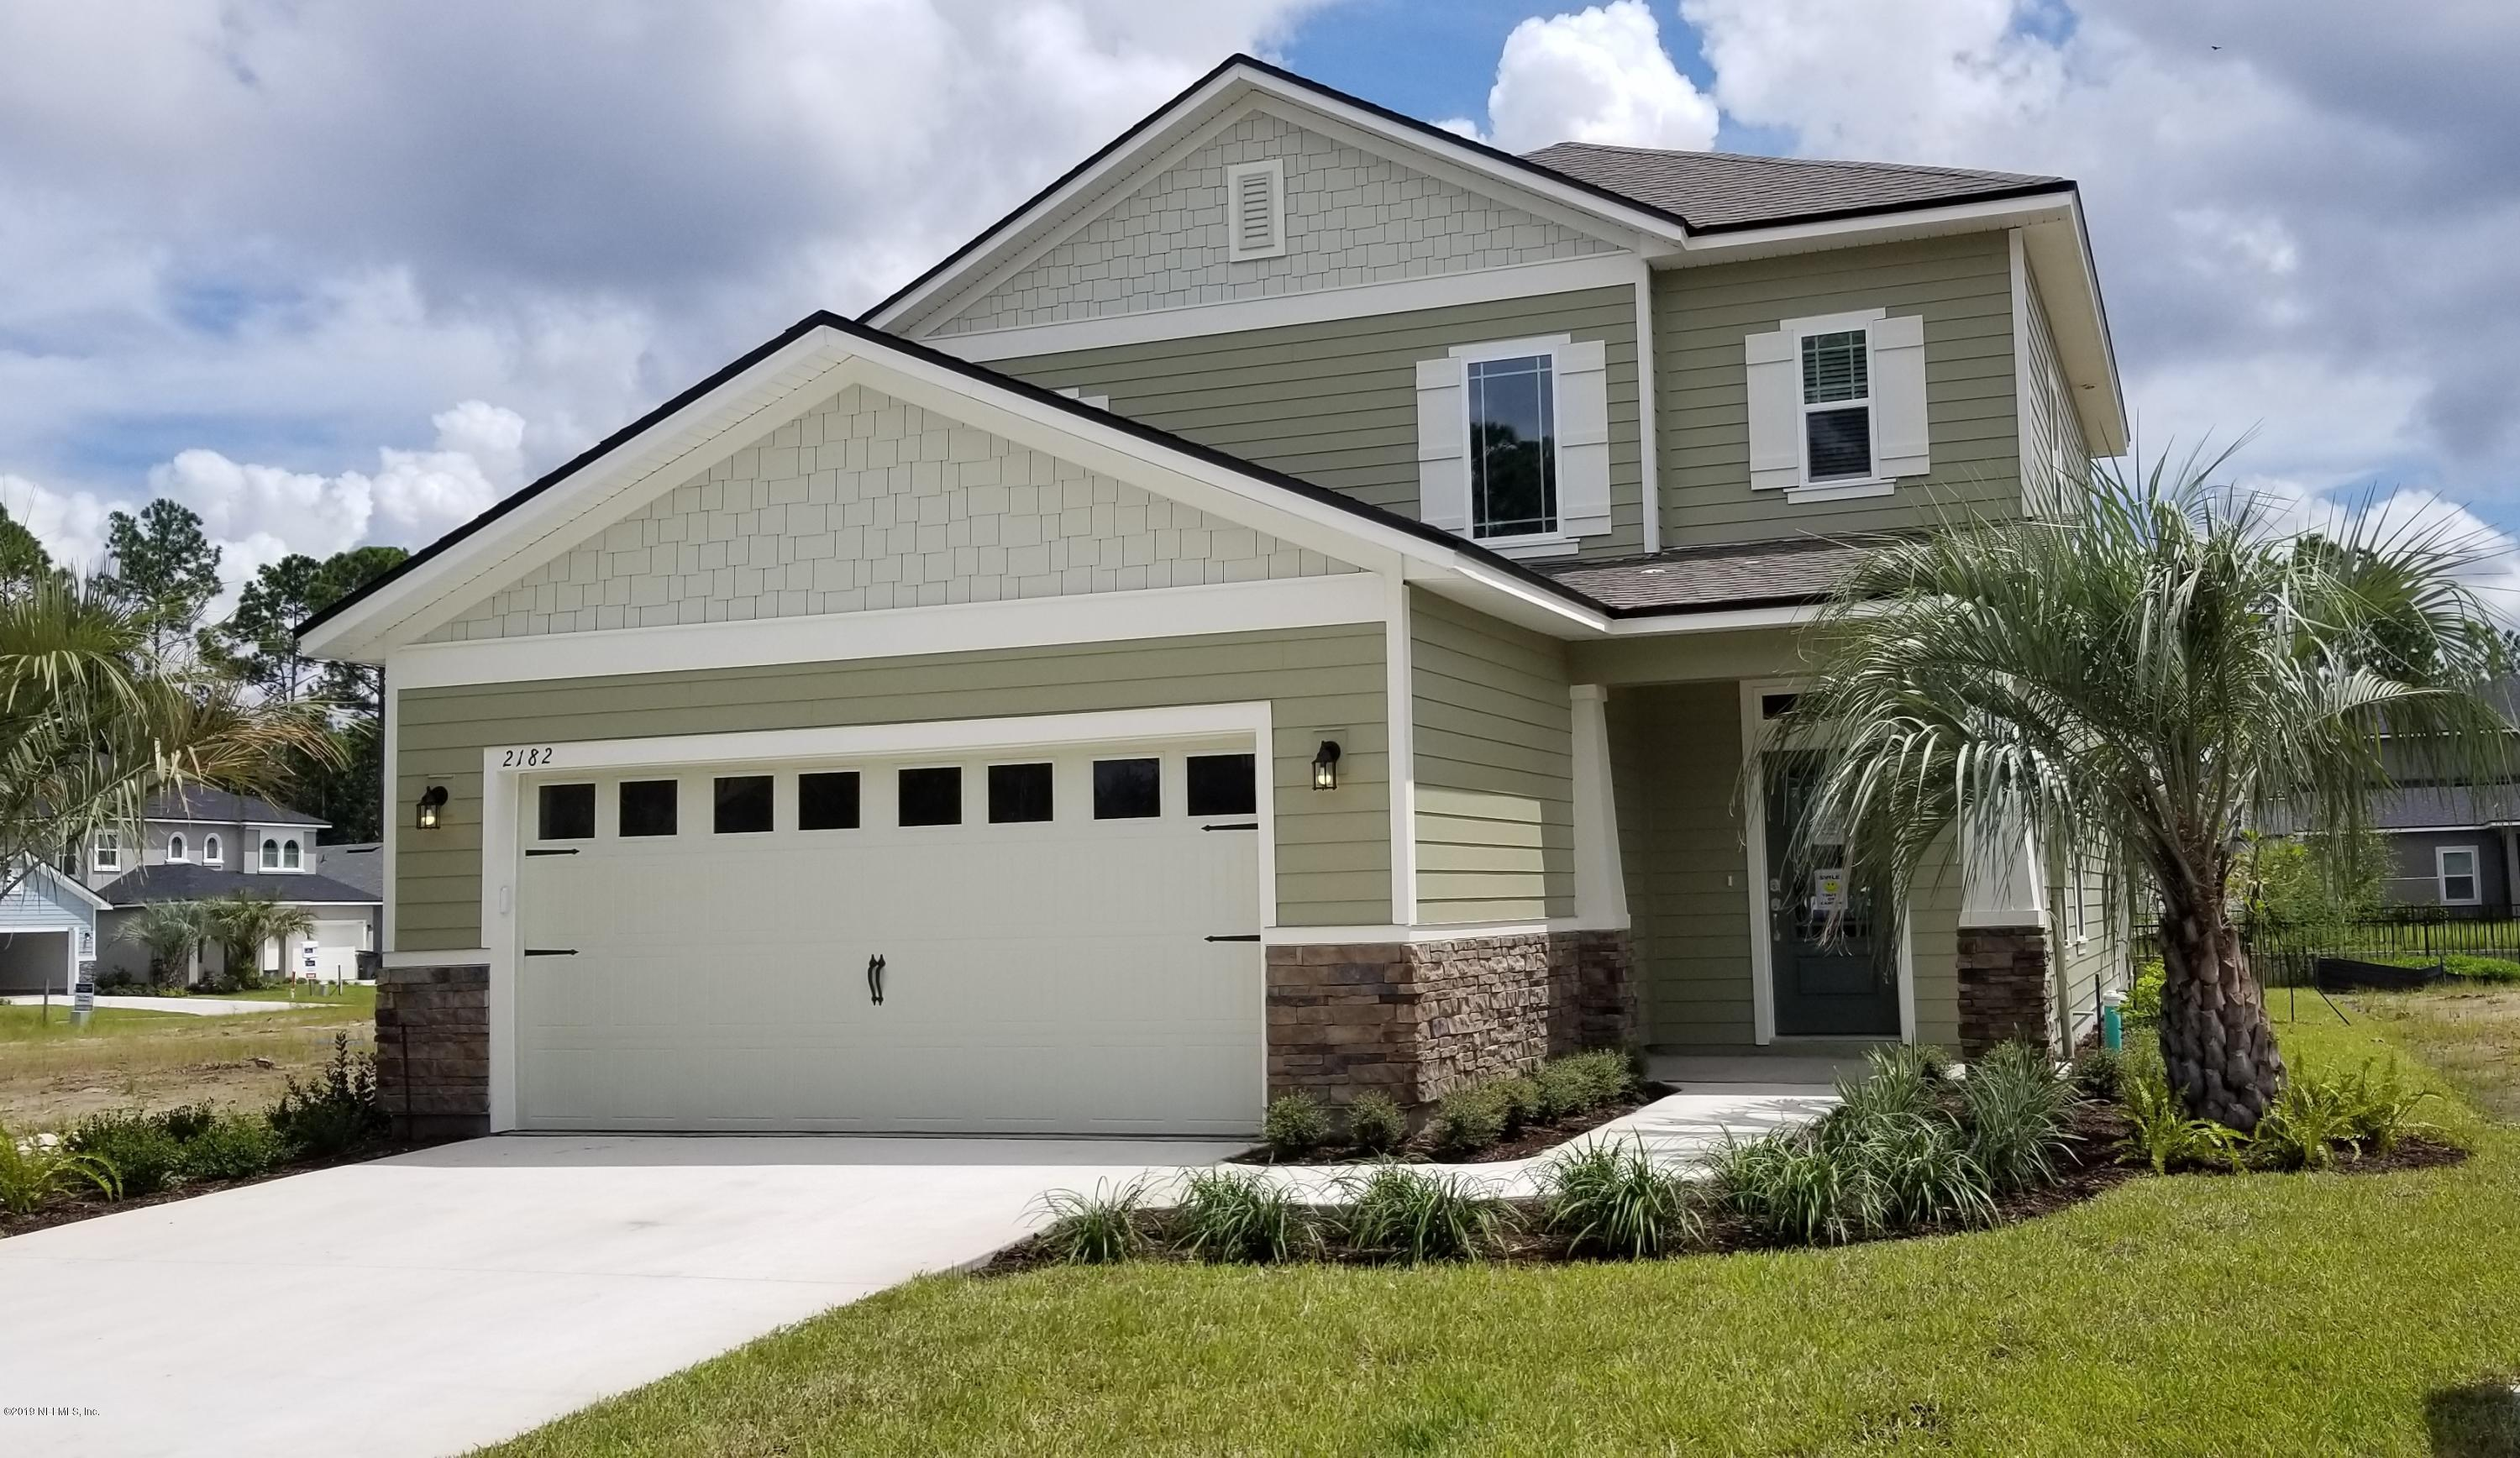 173 HOLLY FOREST, ST AUGUSTINE, FLORIDA 32092, 3 Bedrooms Bedrooms, ,2 BathroomsBathrooms,Residential,For sale,HOLLY FOREST,1046003